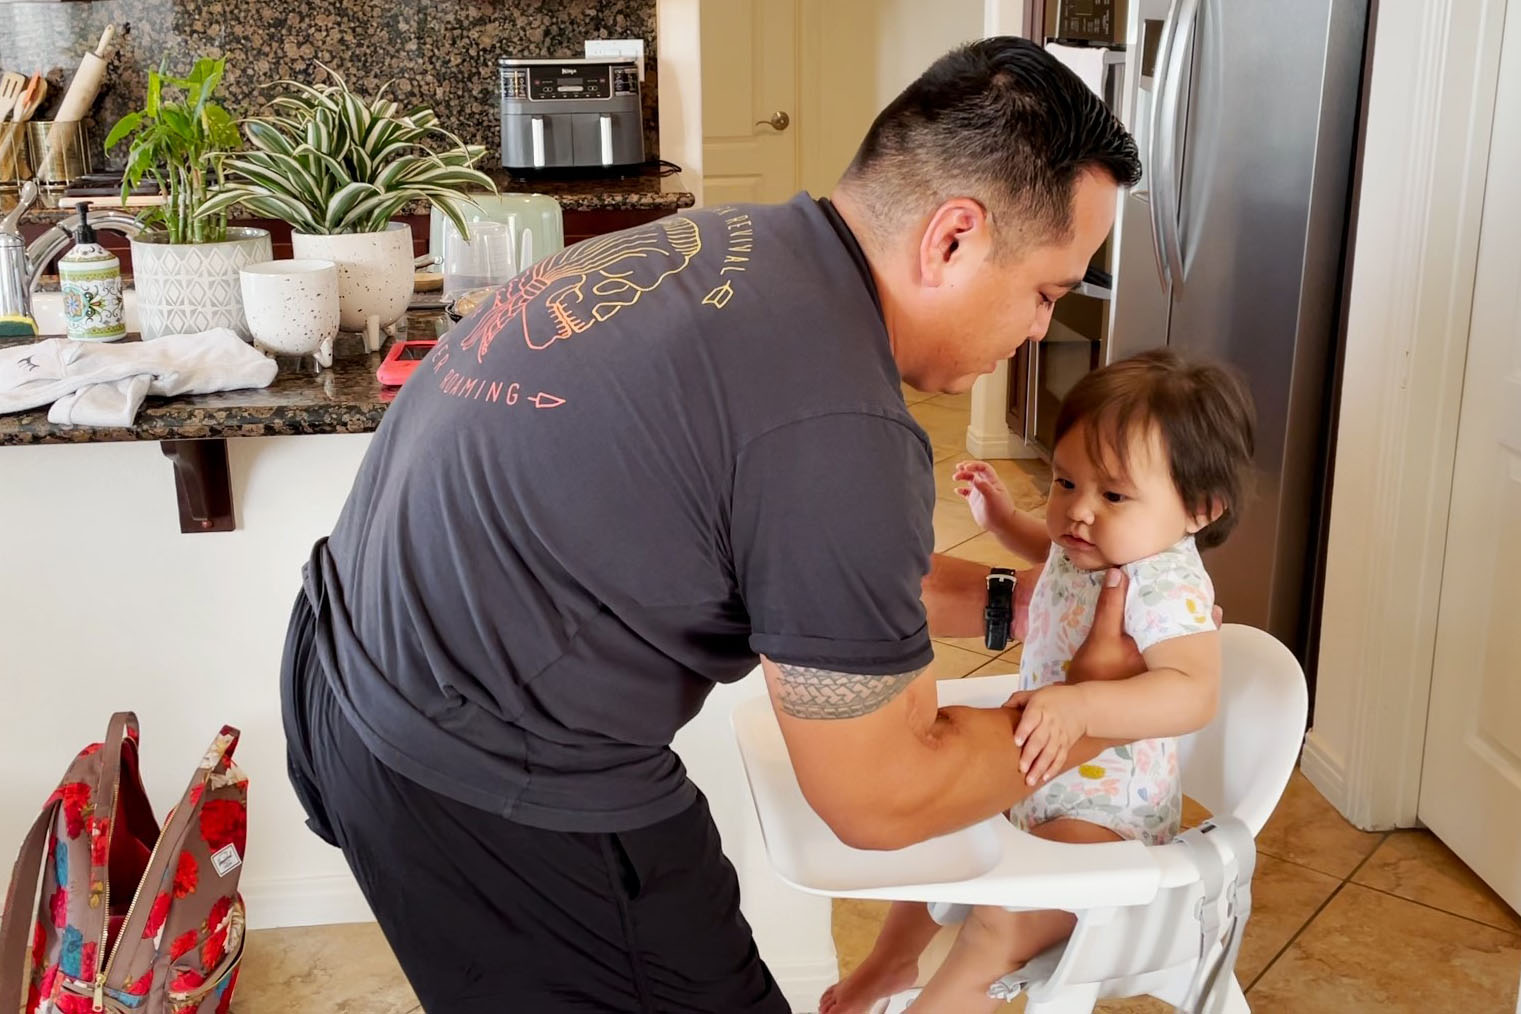 Caption: Former Marine Marcus Chischilly cares for his daughter at their San Diego home. Chischilly was a member of Darkhorse Battalion and lost his left leg in Afghanistan in 2010., Credit: Steve Walsh / American Homefront